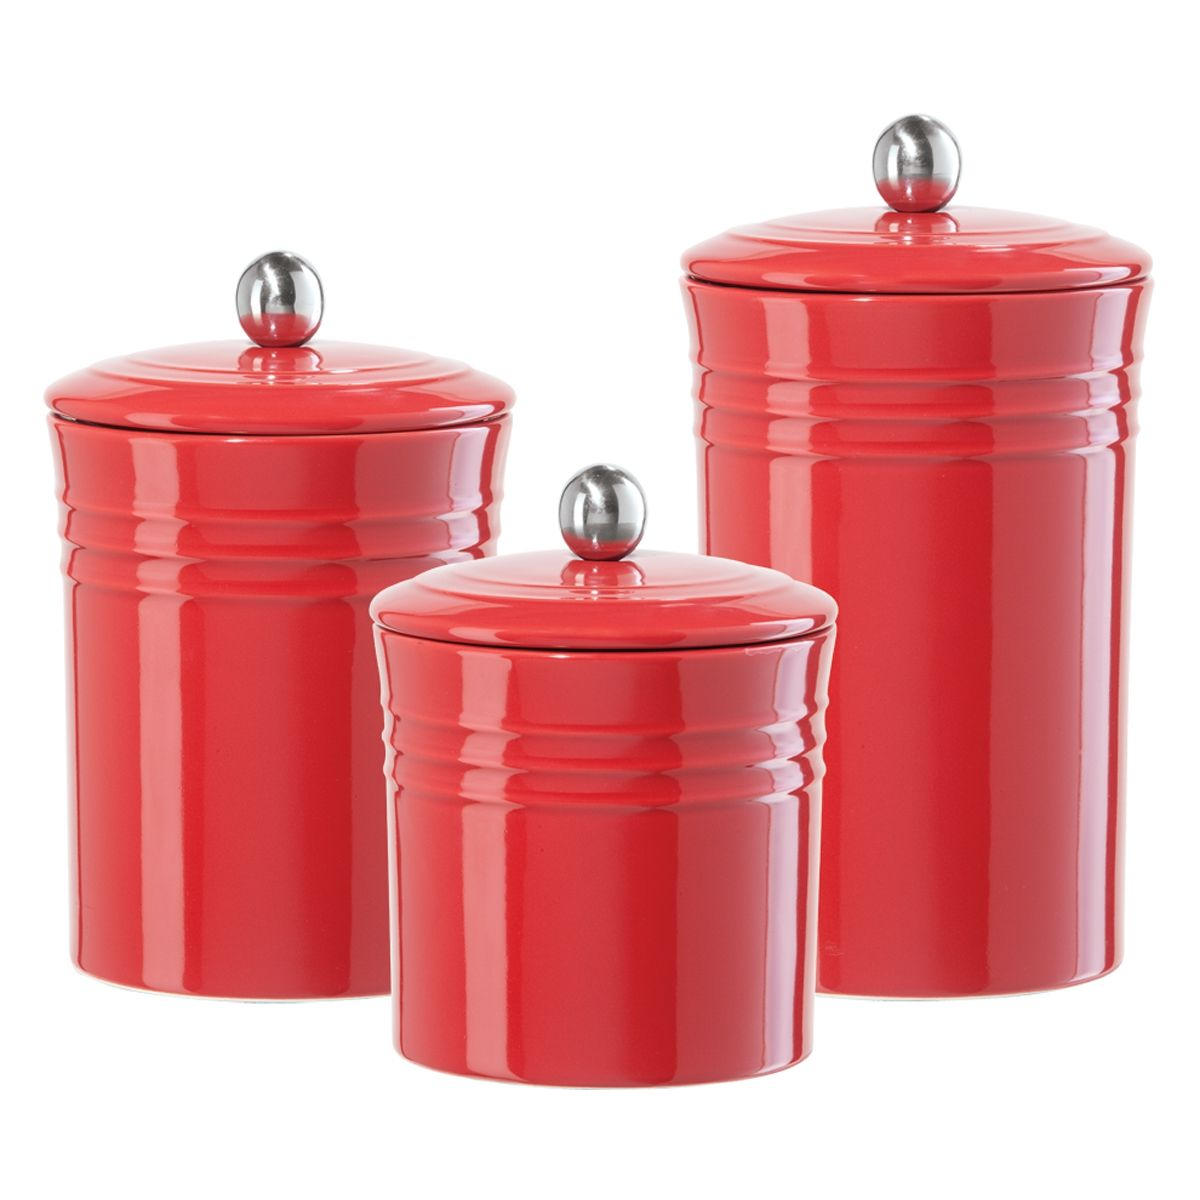 Designer Kitchen Canister Sets Things To Consider Before Buying Kitchen Canisters Retrosonik